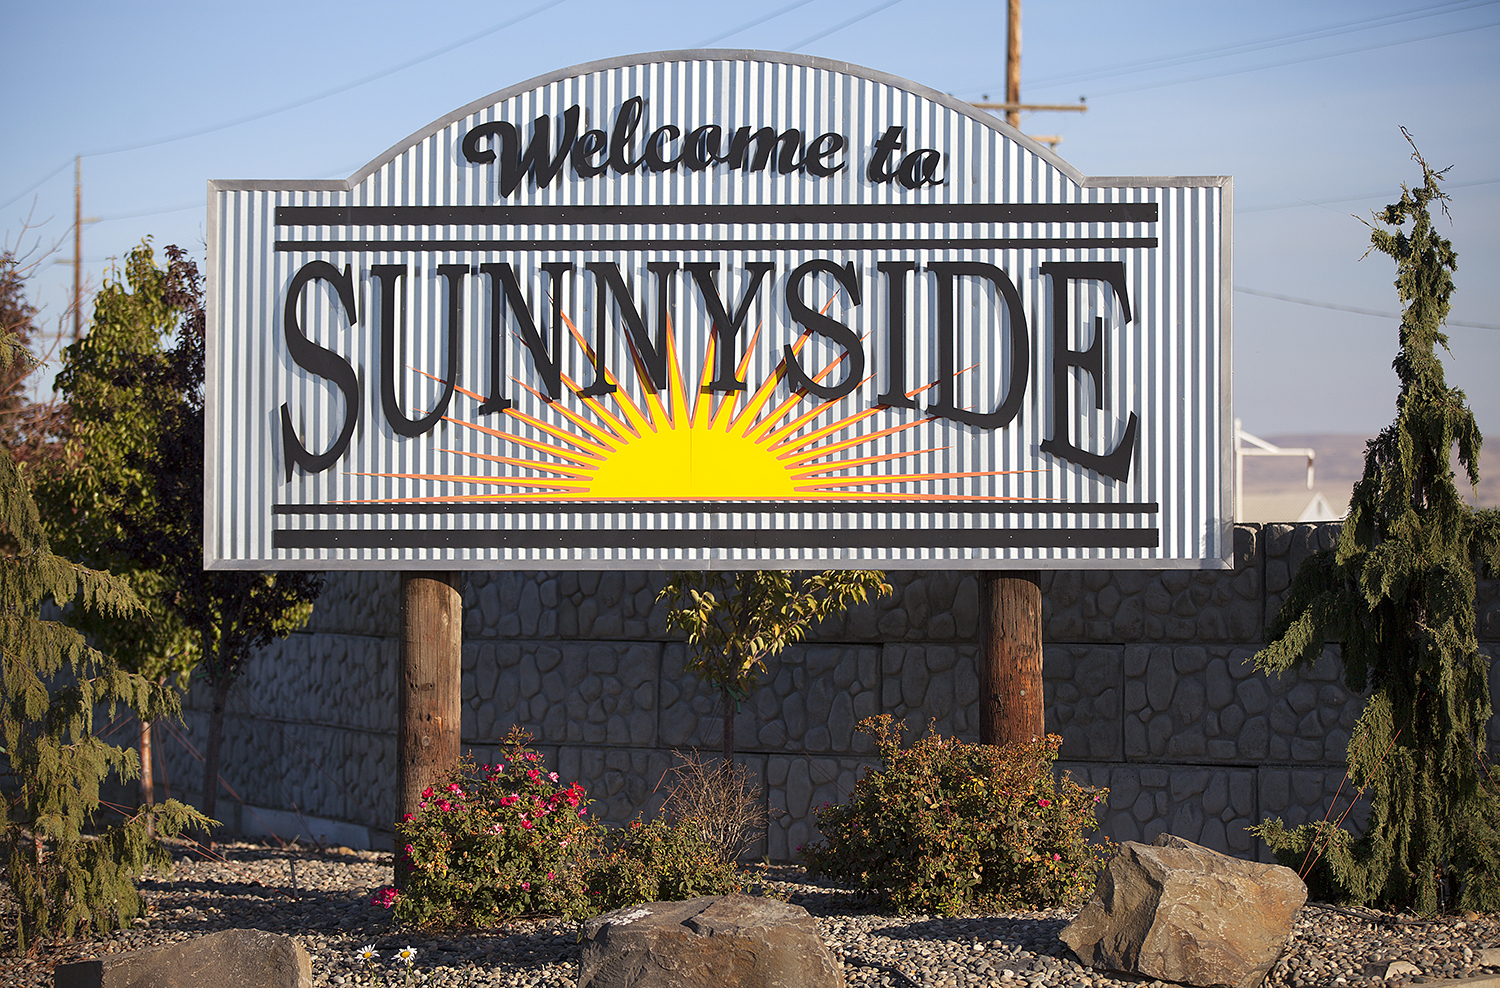 SUNNYSIDE. It's easy to focus on the destination rather than the journey, but that's only part of the story. There are so many exciting things to see along the way; the general store in a small town, a historical marker with information about an important event or a sign welcoming visitors into a town. Photographer Anthony May has been collecting Welcome signs from towns and cities he's visited for over nine years and across several states. This gallery focuses specifically on Washington. (Image: Anthony May / Seattle Refined)